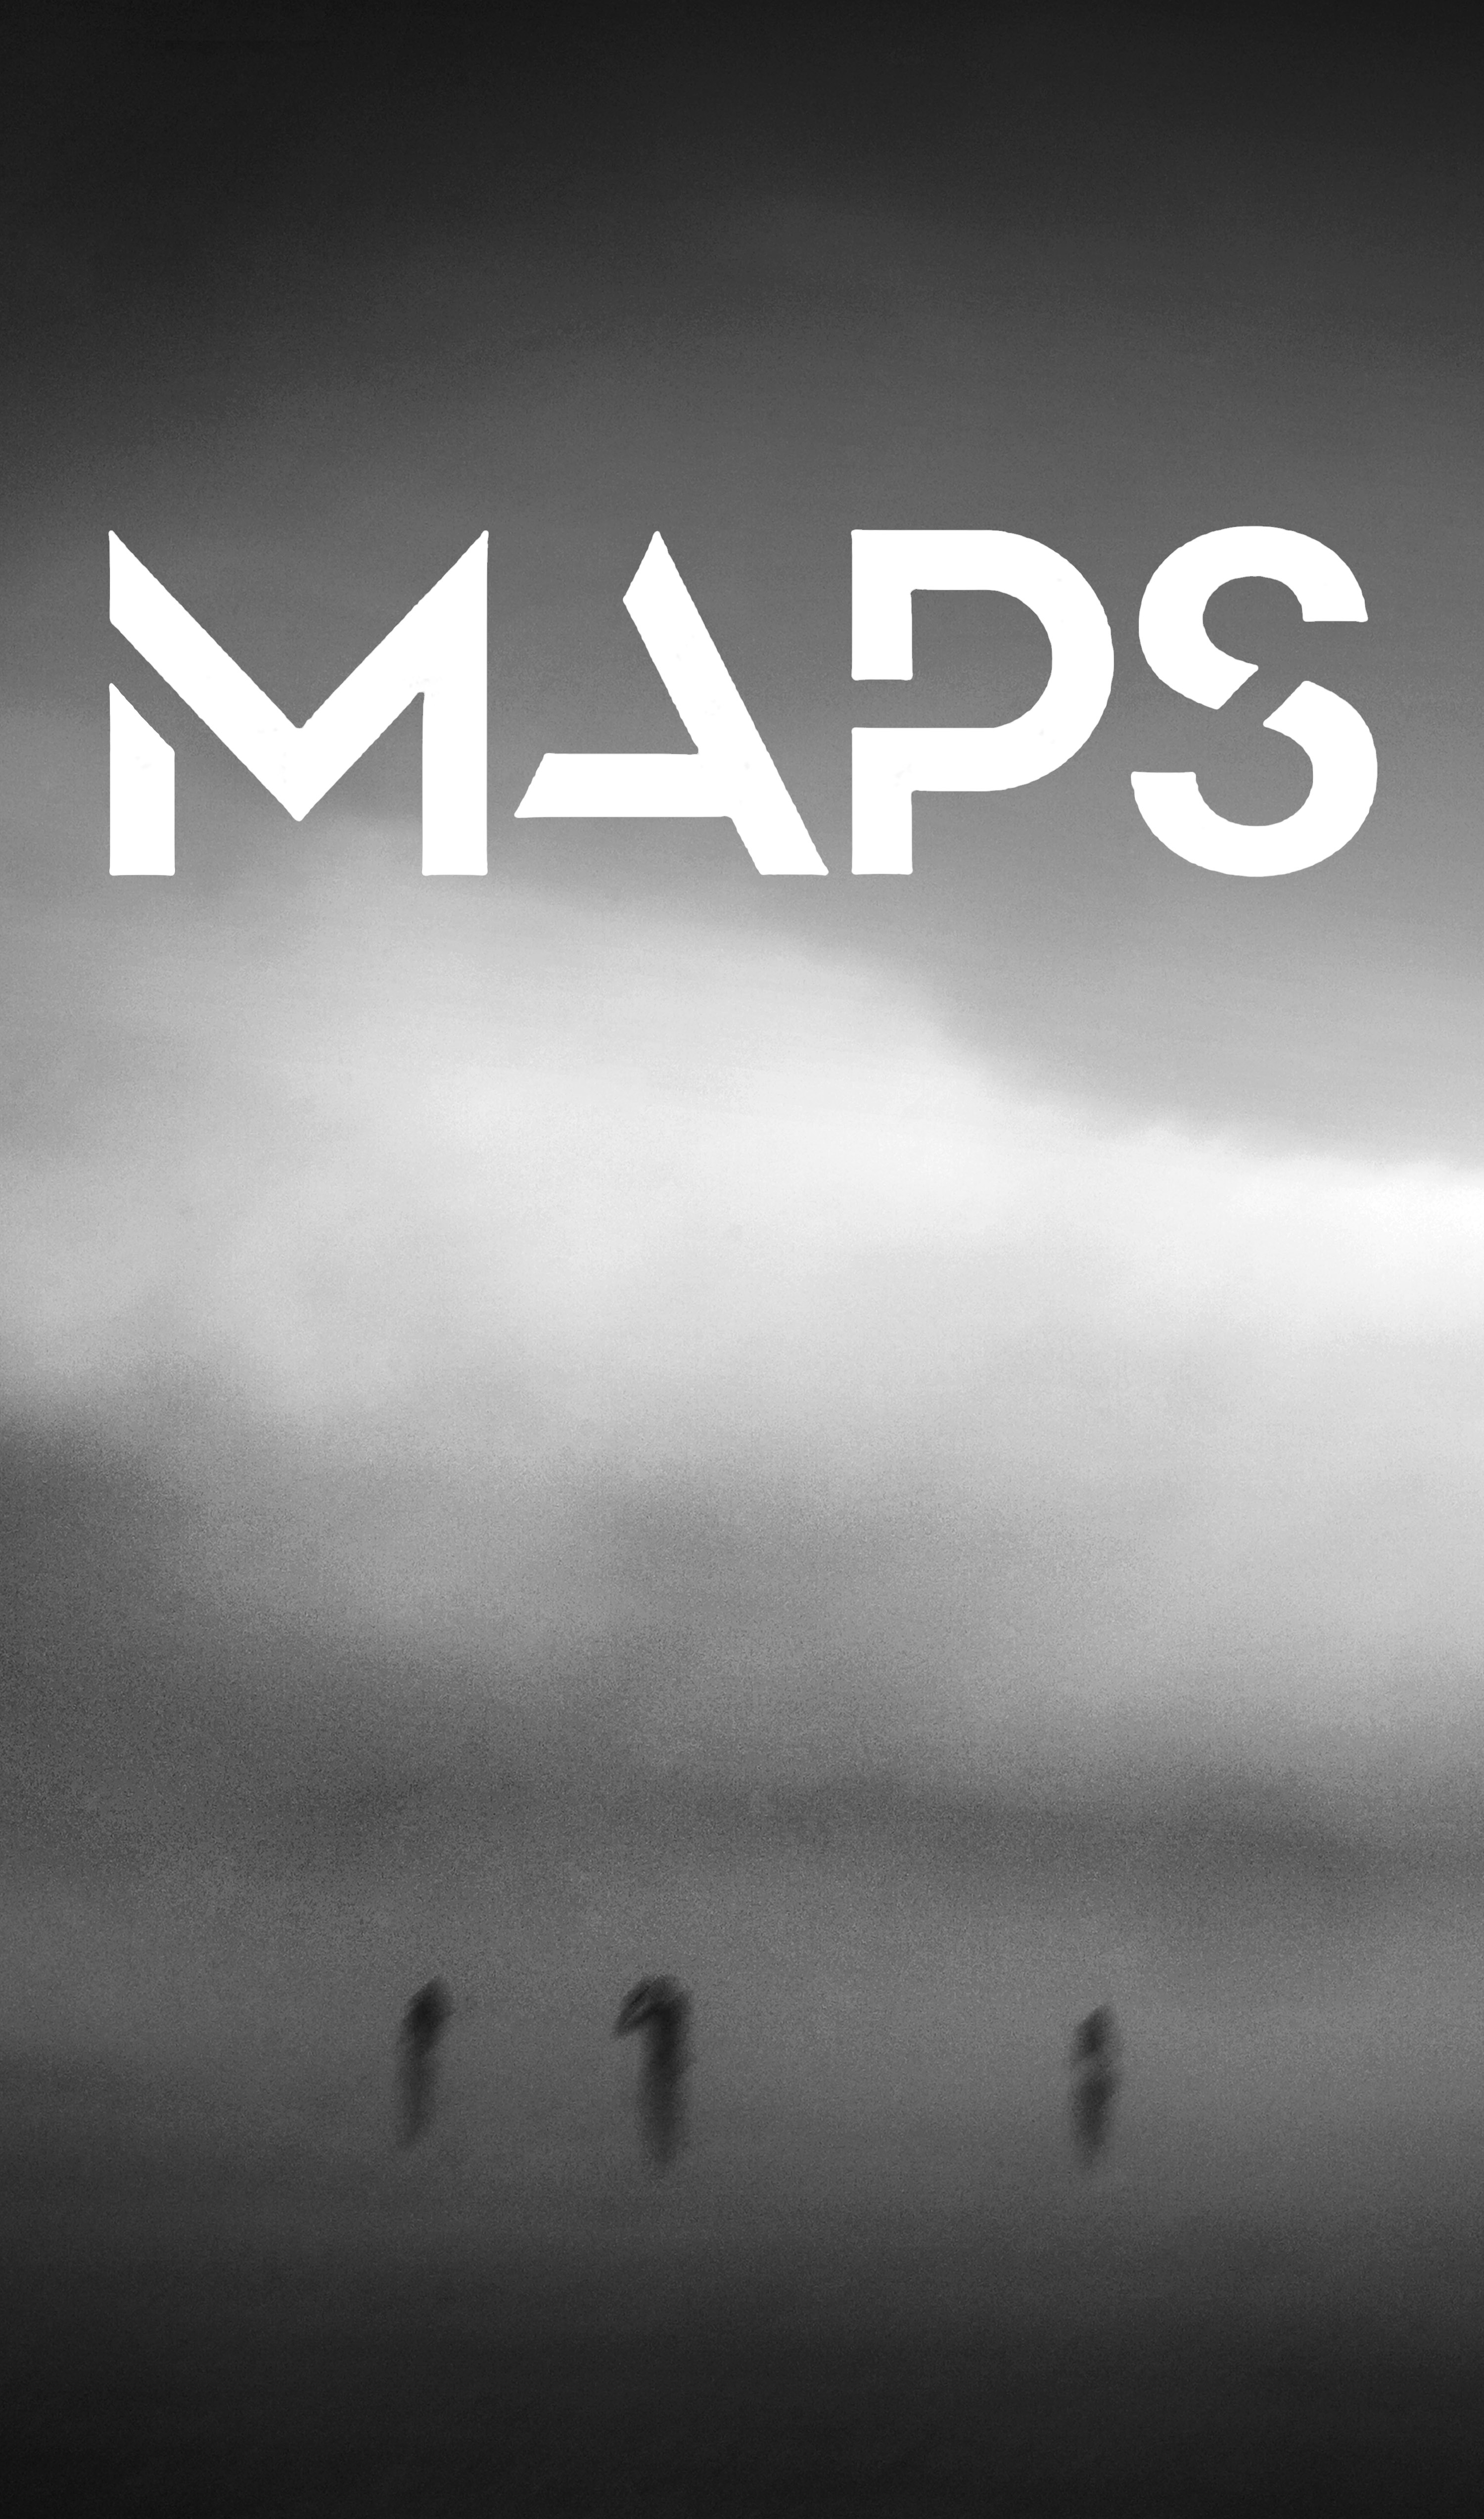 MAPS Images